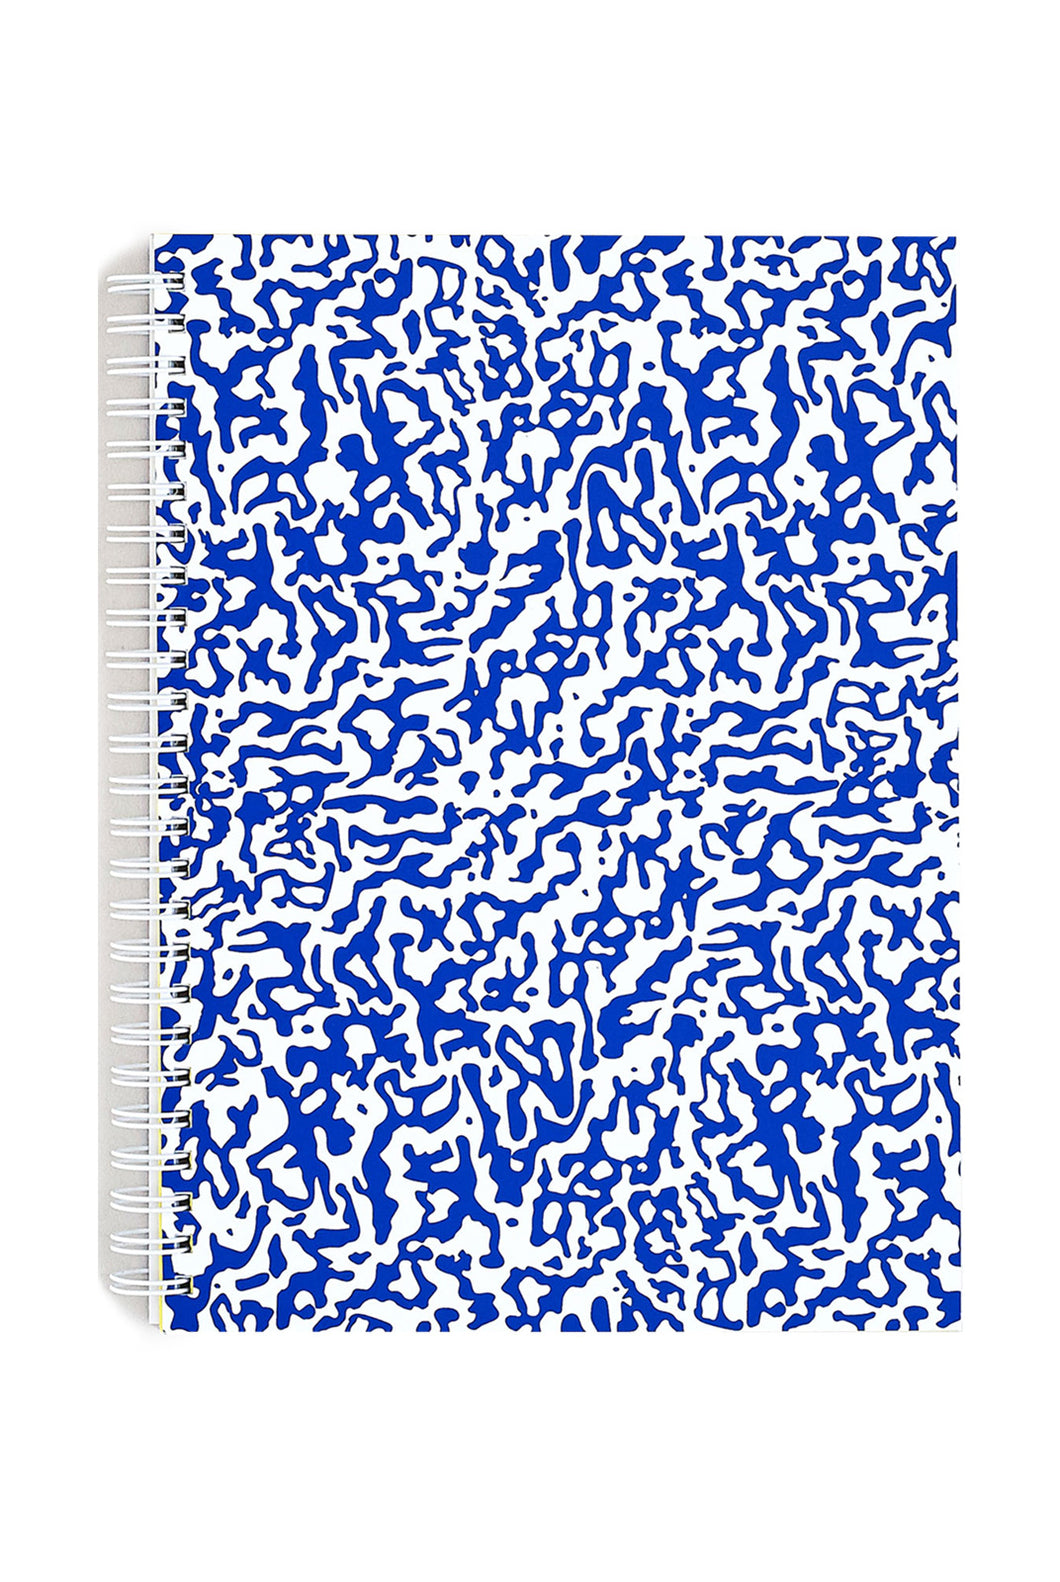 WRAP - Screen Printed Notebook - Ruled - Large - Ripple Blue & White